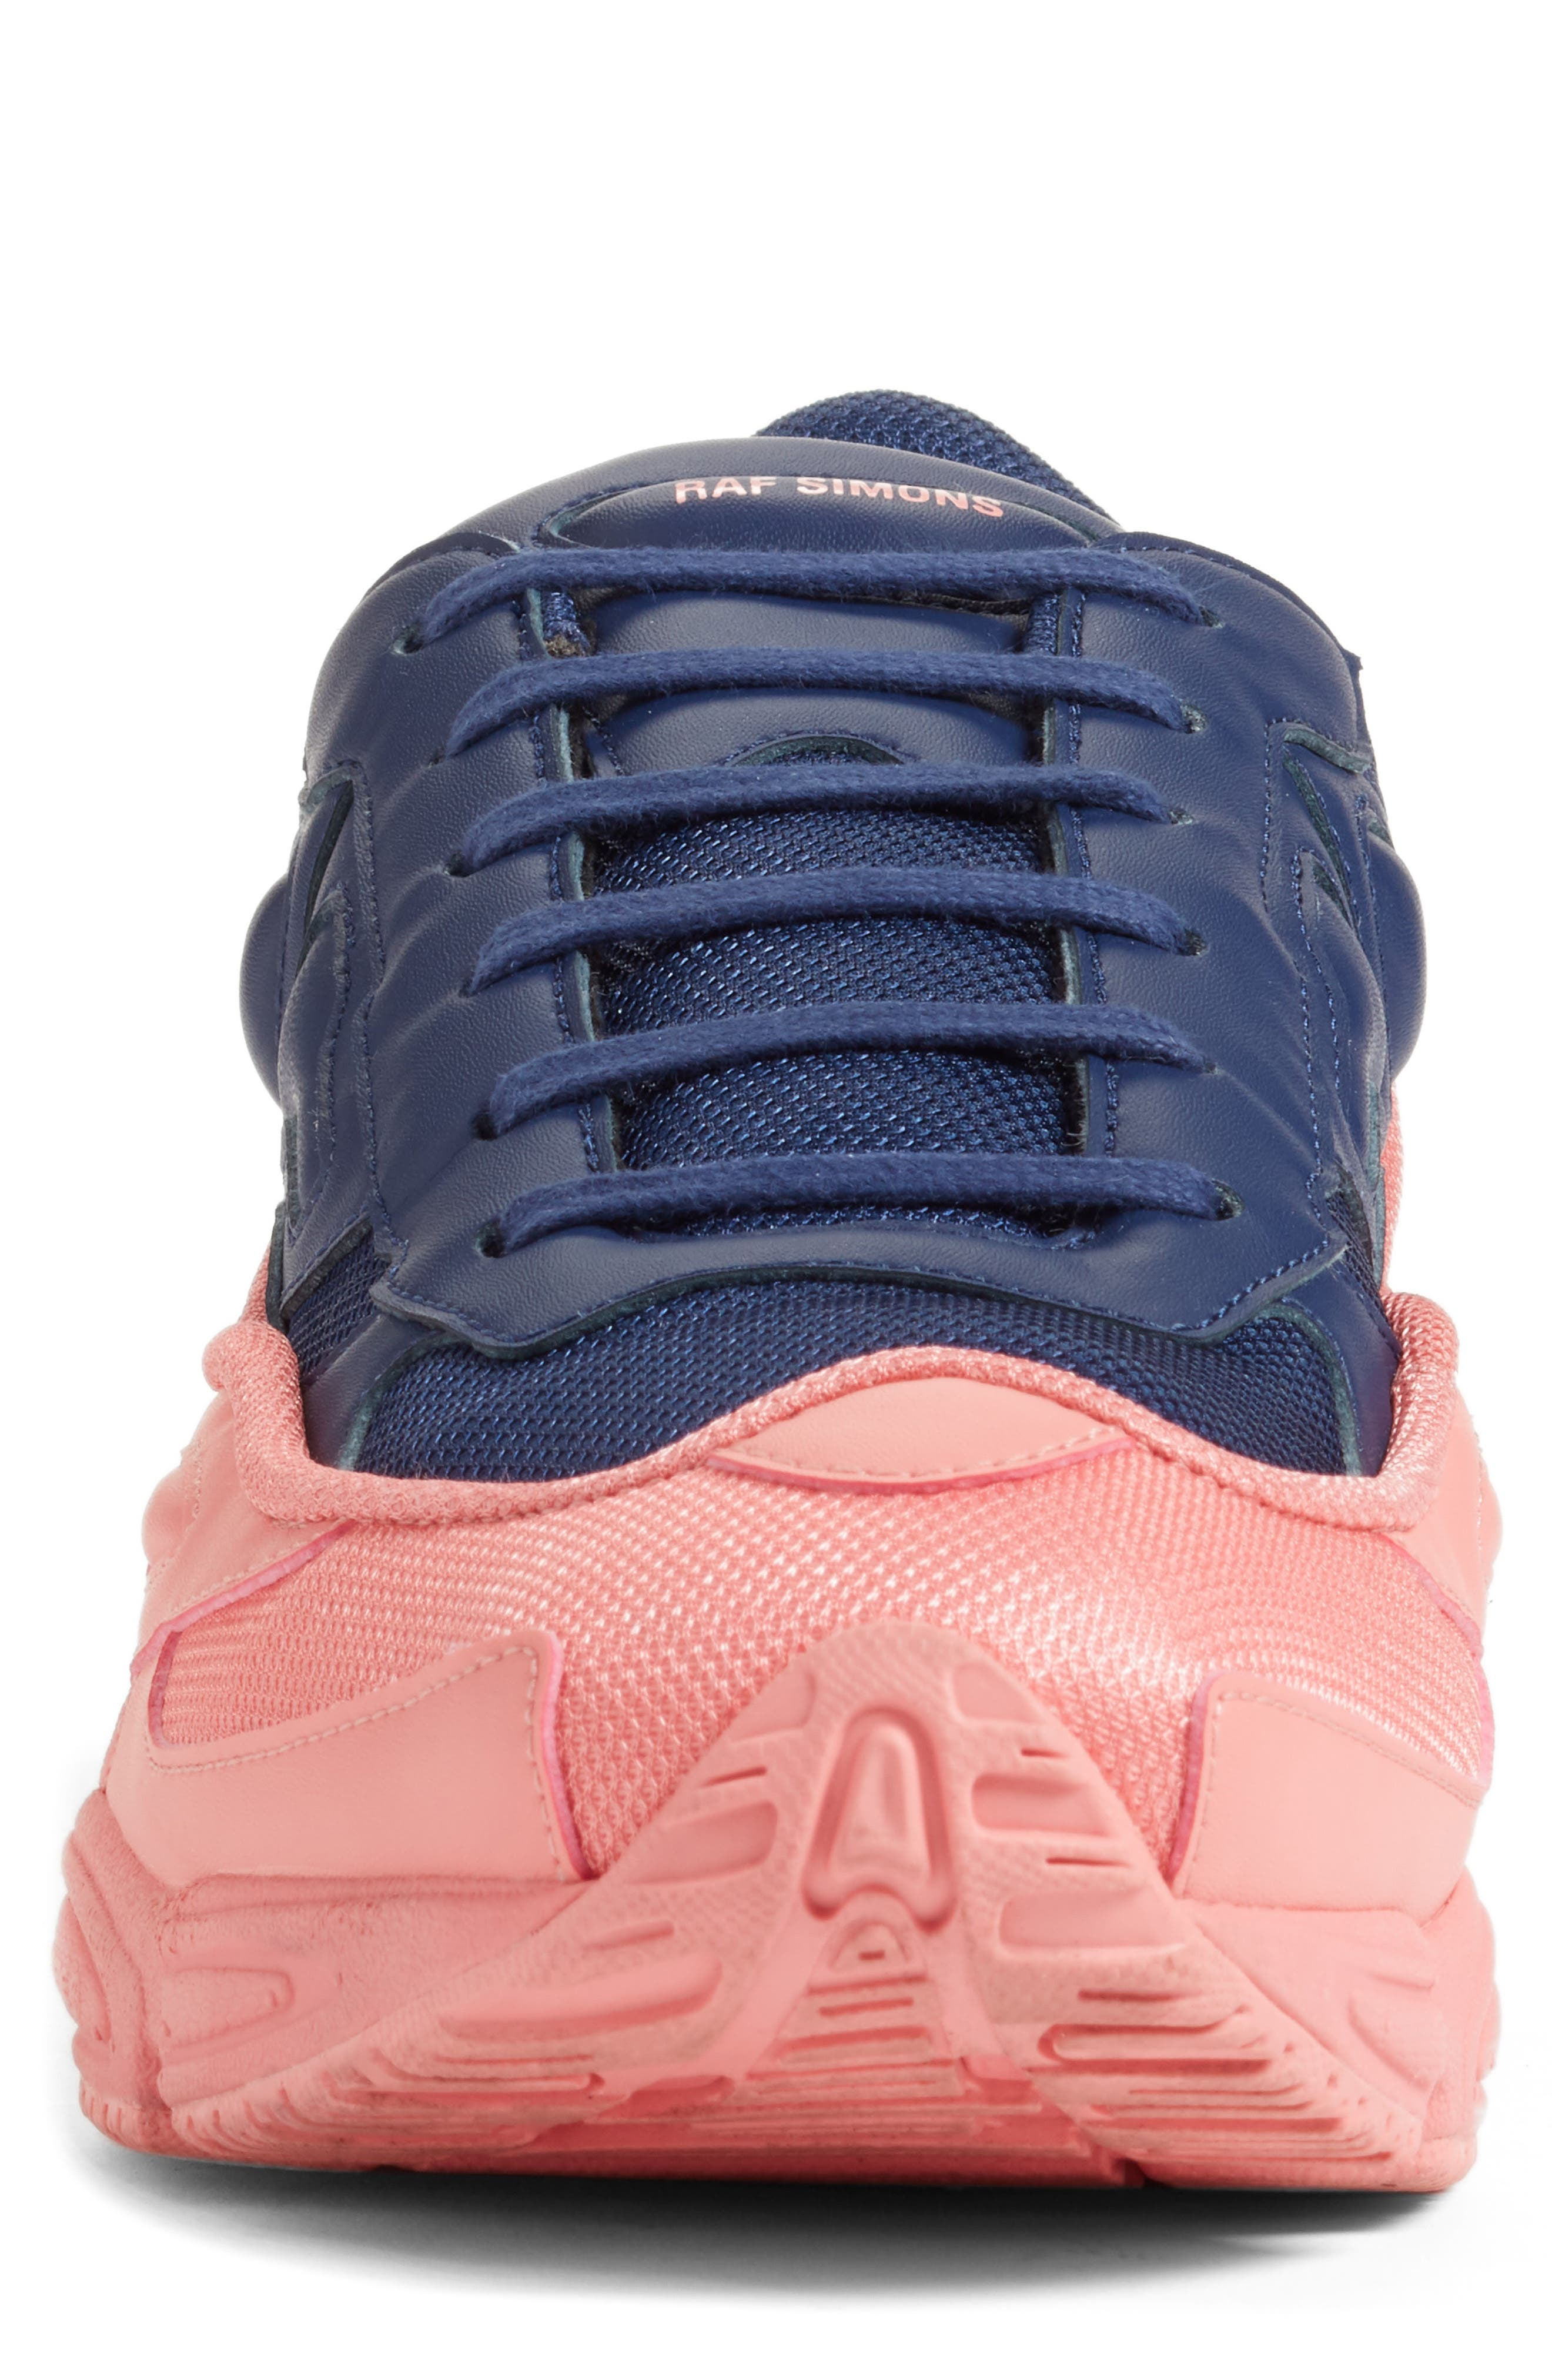 adidas by Raf Simons Ozweego III Sneaker,                             Alternate thumbnail 4, color,                             TACTILE ROSE/ DARK BLUE